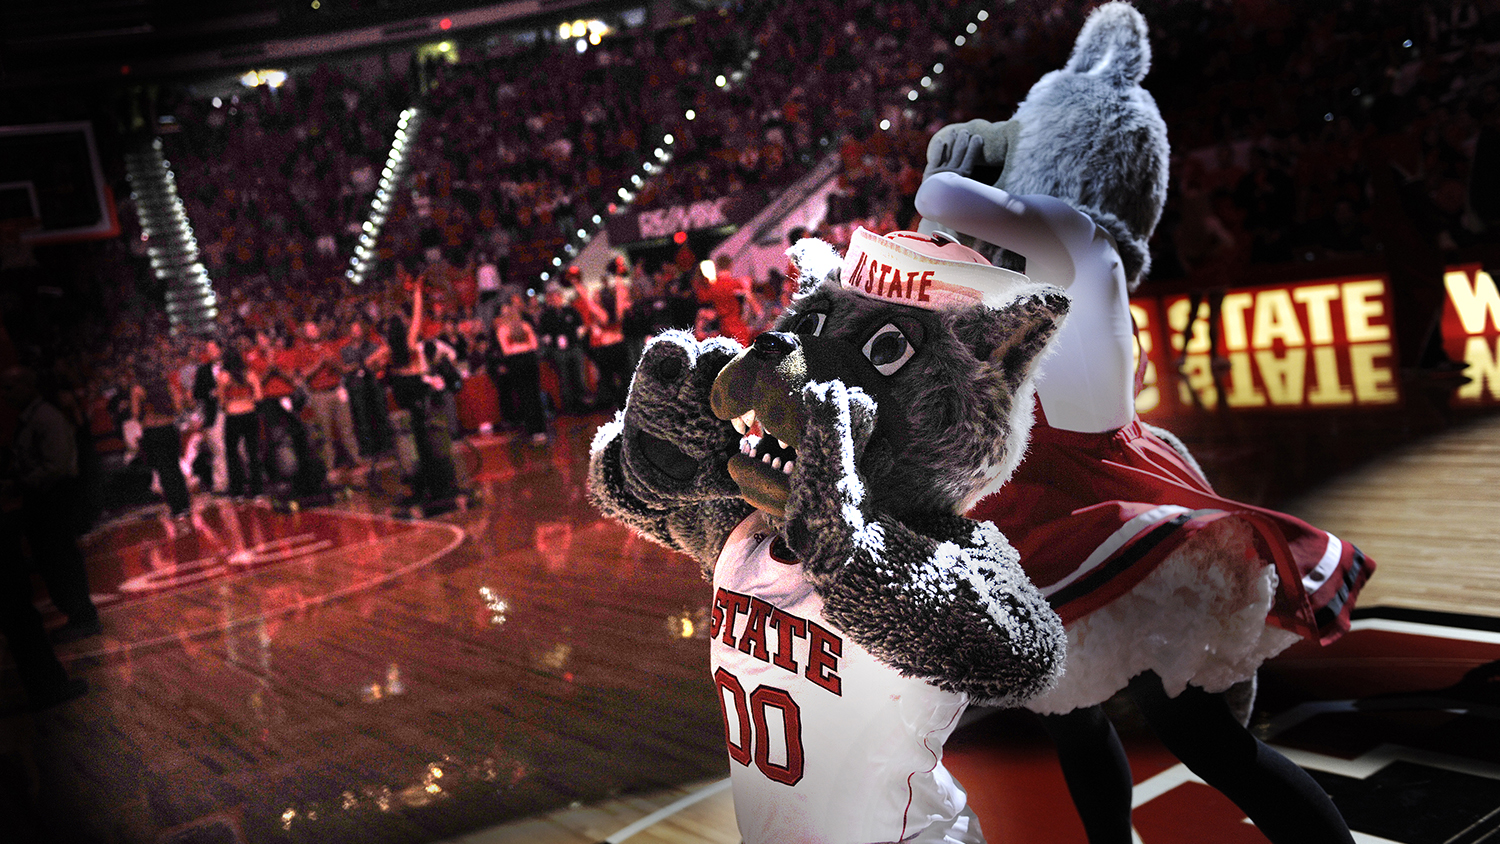 Mr. and Ms. Wuf cheer at a a basketball game.